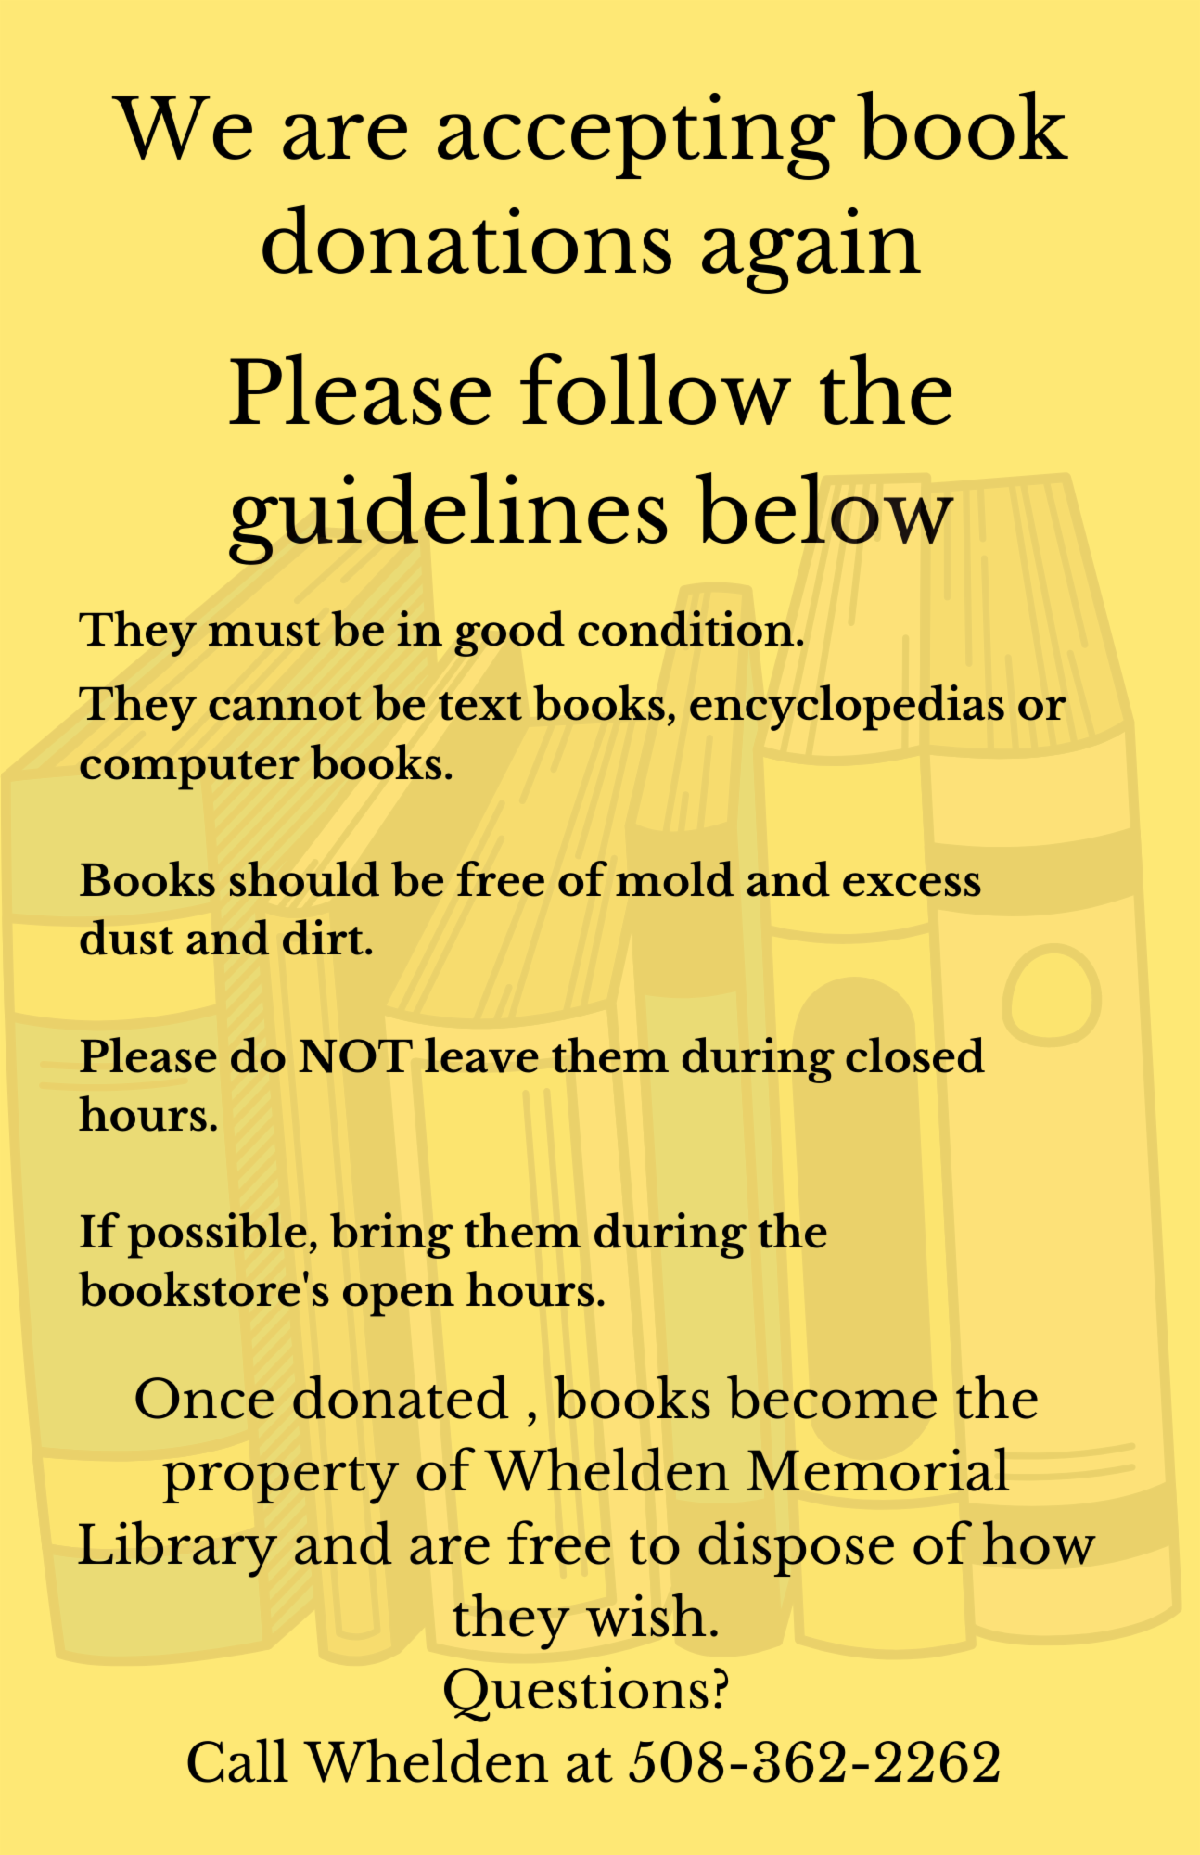 We are accepting book donations However.png